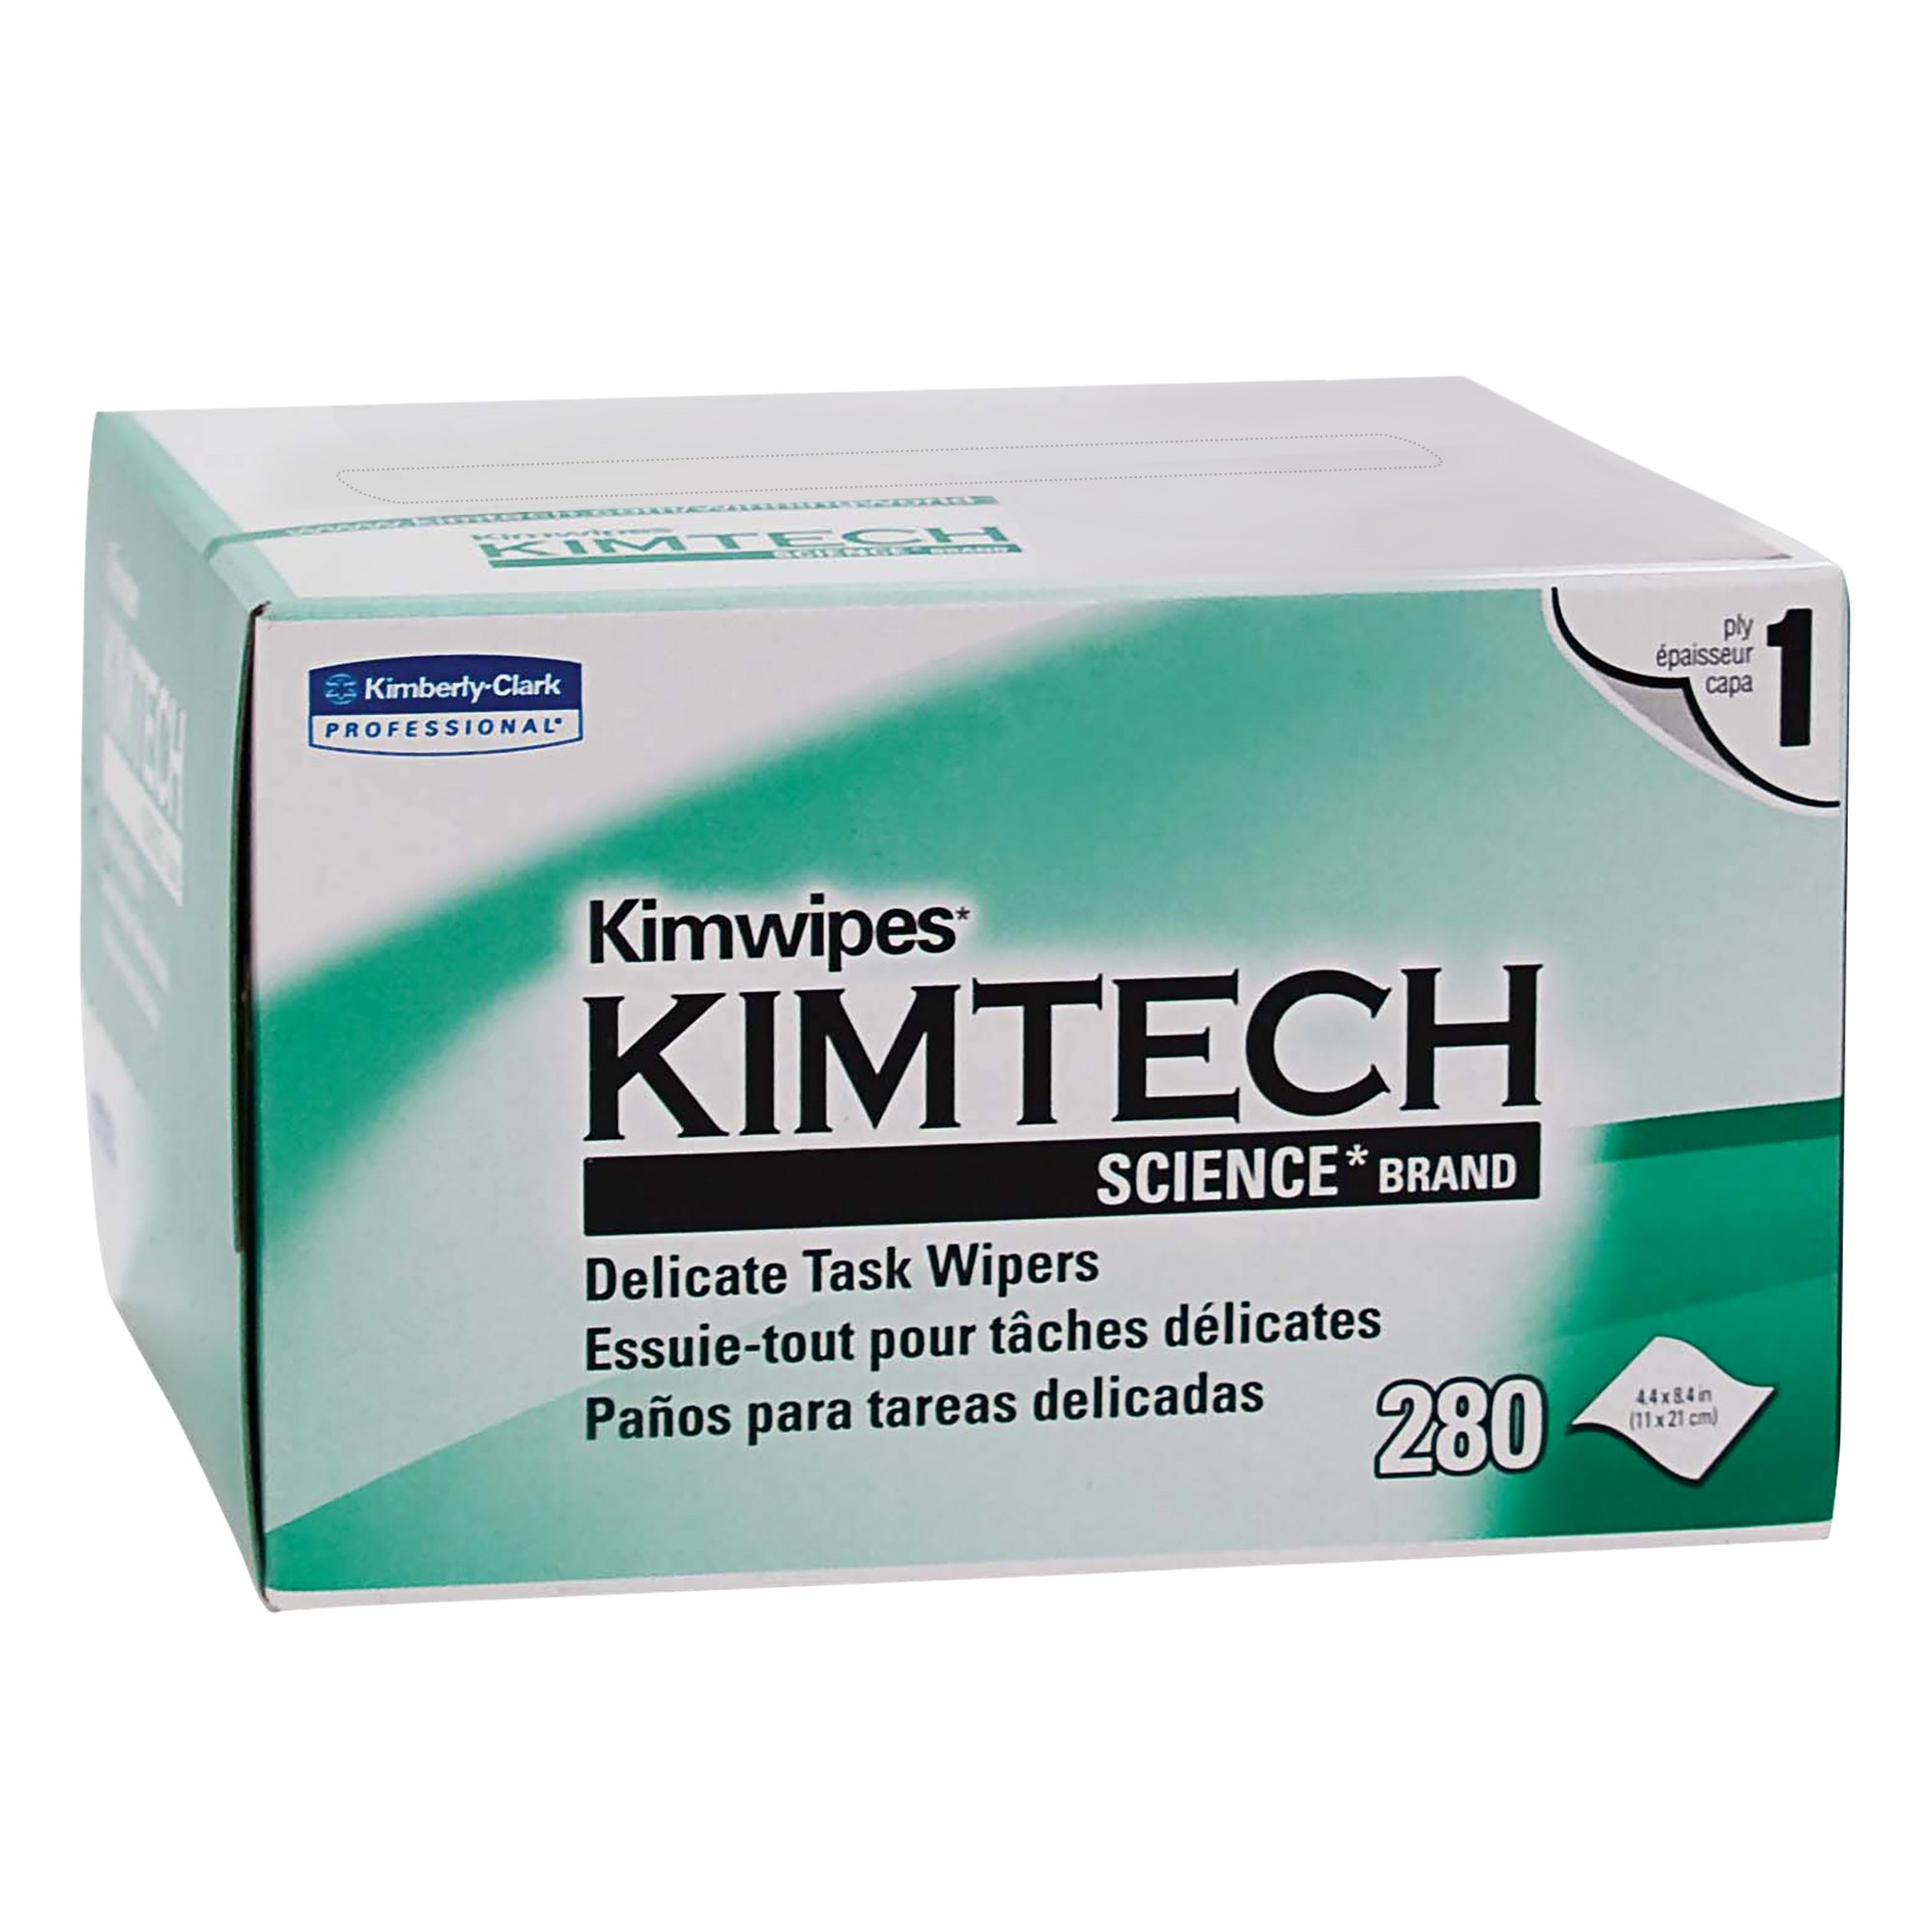 Kimwipes Delicate Task Kimtech Science Wipers (34120), White, 1-PLY, 30 Pop-Up Boxes/Case, 280 Sheets/Box, 8,400 Sheets/Case by Kimberly-Clark Professional